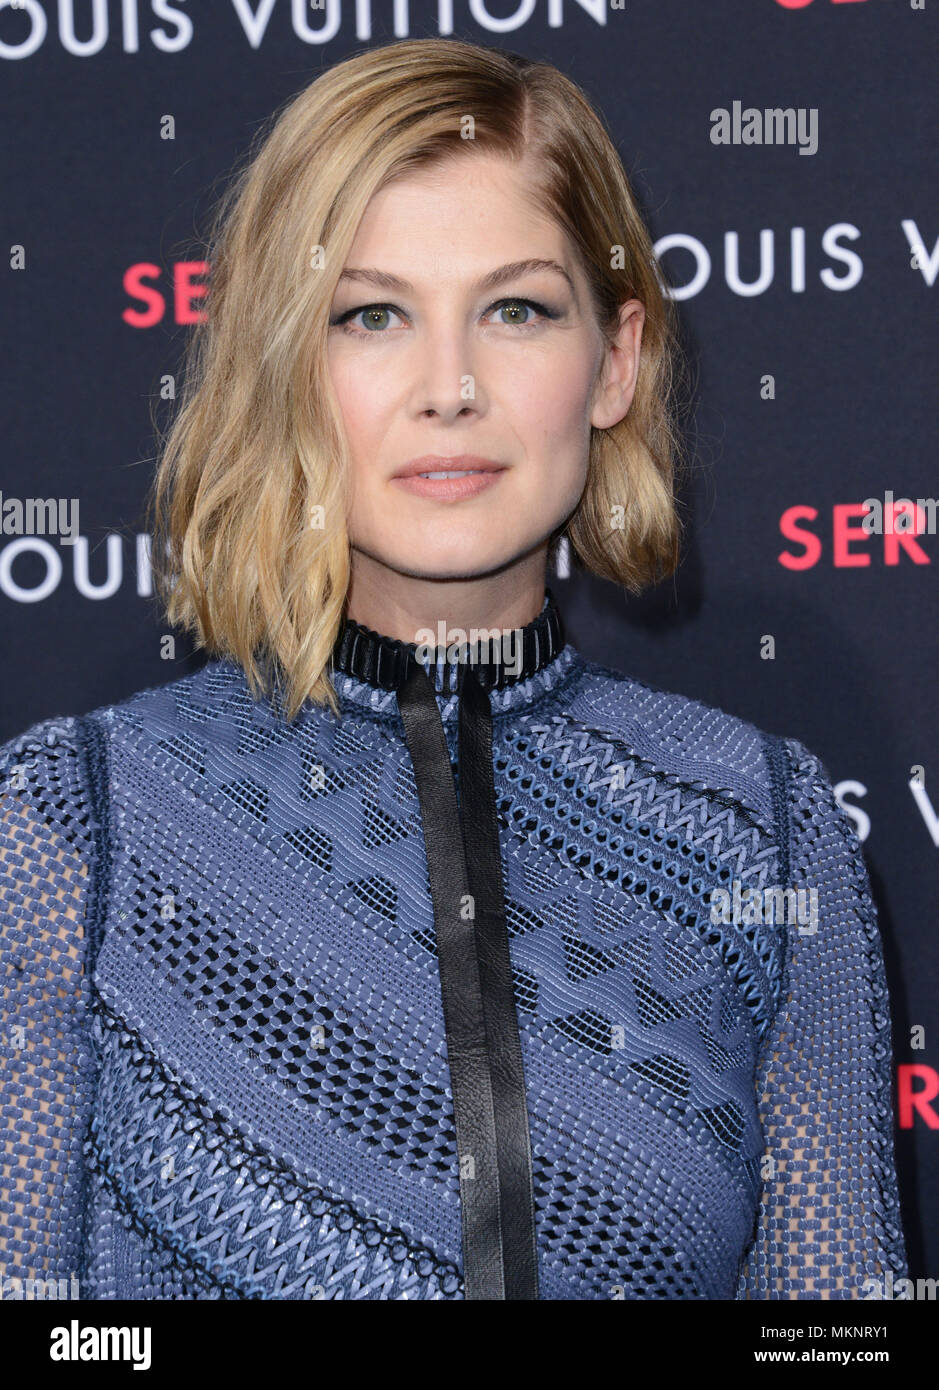 Rosamund Pike 027 at  the Louis Vuitton Series 2 exhibition  at 1135 north Highland in Los Angeles.  February 5, 2015Rosamund Pike 027  Event in Hollywood Life - California,  Red Carpet Event, Vertical, USA, Film Industry, Celebrities,  Photography, Bestof, Arts Culture and Entertainment, Topix Celebrities fashion / one person, Vertical, Best of, Hollywood Life, Event in Hollywood Life - California,  Red Carpet and backstage, USA, Film Industry, Celebrities,  movie celebrities, TV celebrities, Music celebrities, Photography, Bestof, Arts Culture and Entertainment,  Topix, headshot, vertical, f - Stock Image